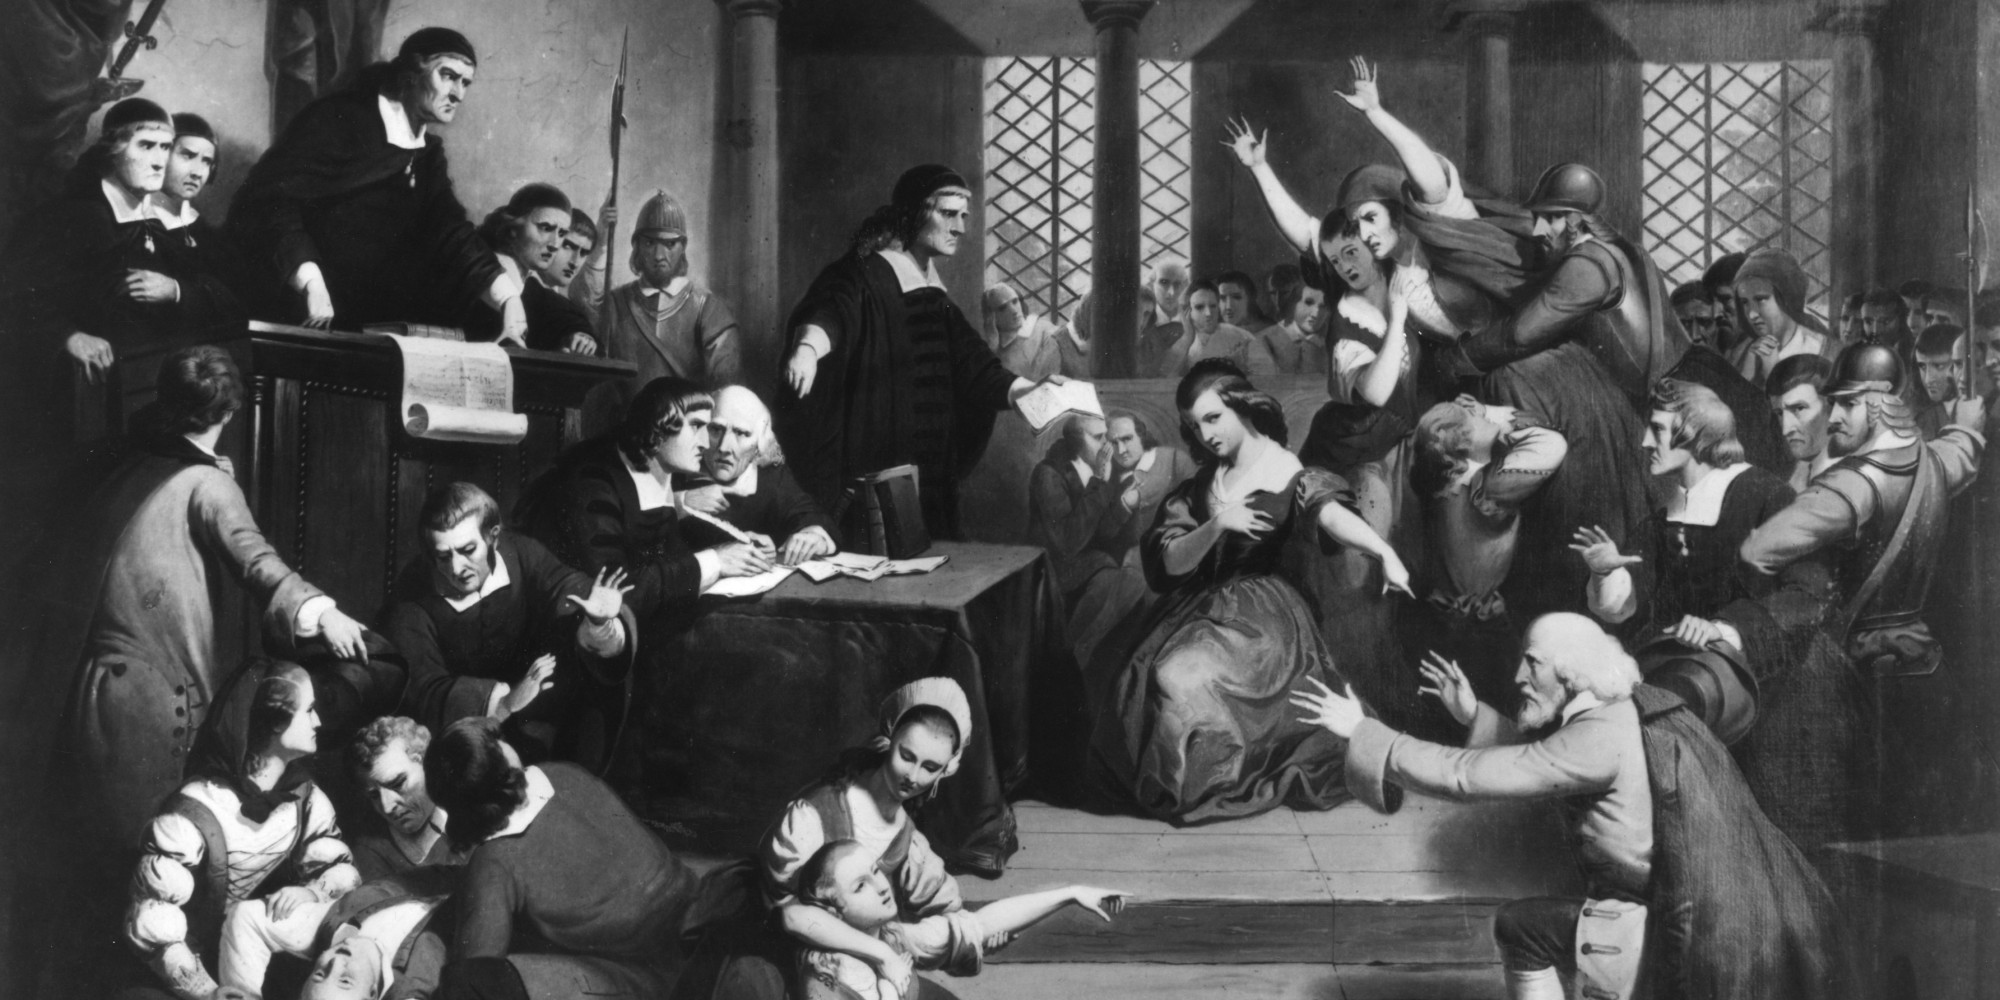 a history of salem witchcraft trials in colonial massachusetts The salem witch trials occurred in colonial massachusetts between 1692 and 1693 more than 200 people were accused of practicing witchcraft—the devil's magic—and 20 were executed eventually, the colony admitted the trials were a mistake and compensated the families of those convicted.